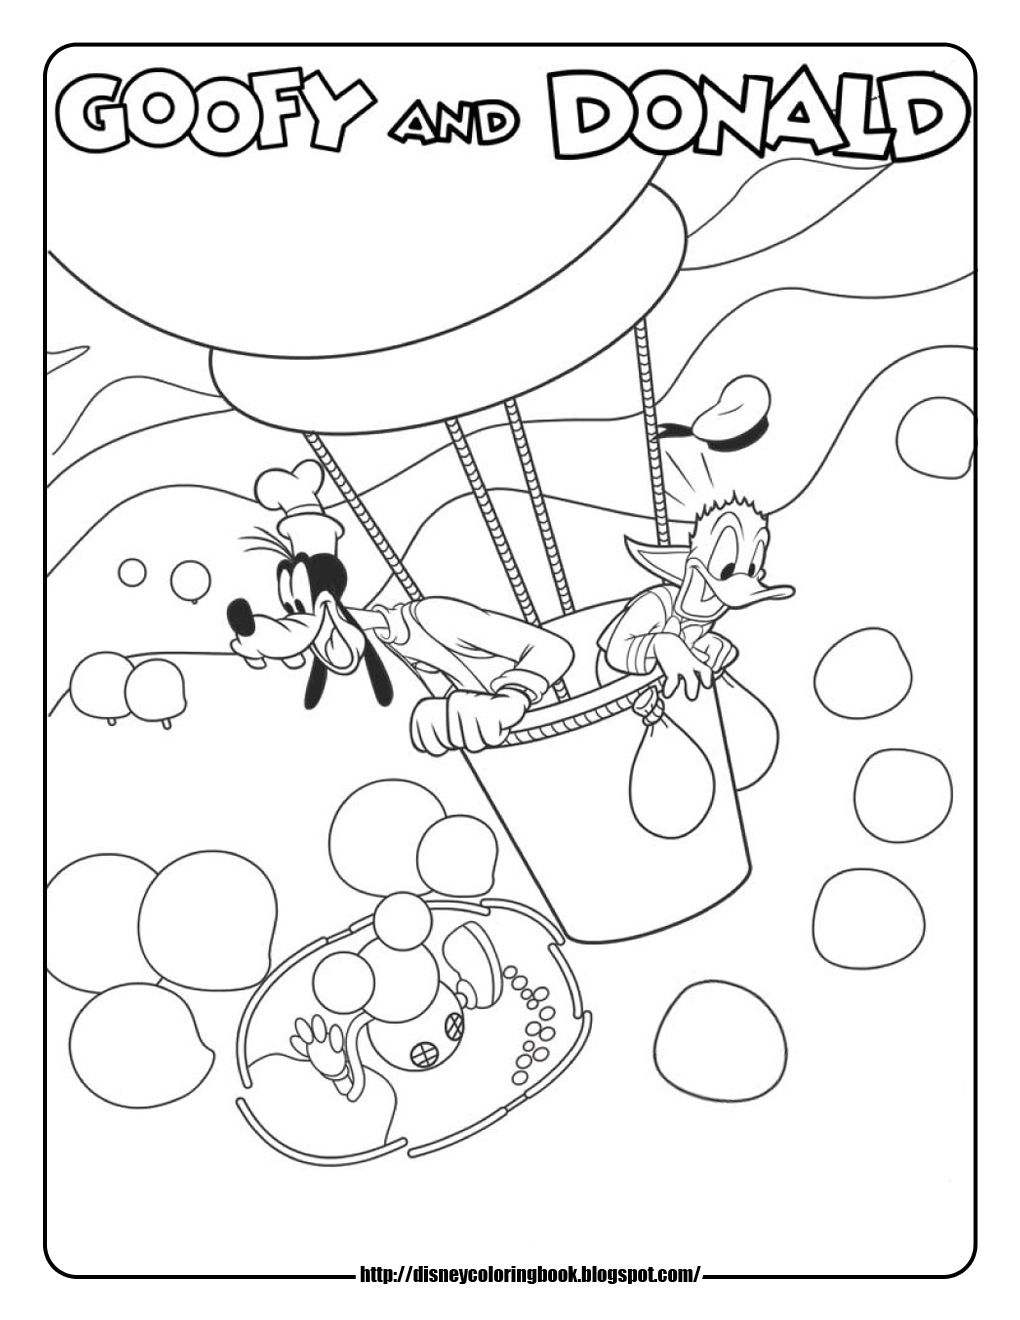 mickey mouse coloring pages goofy donald hot air balloon